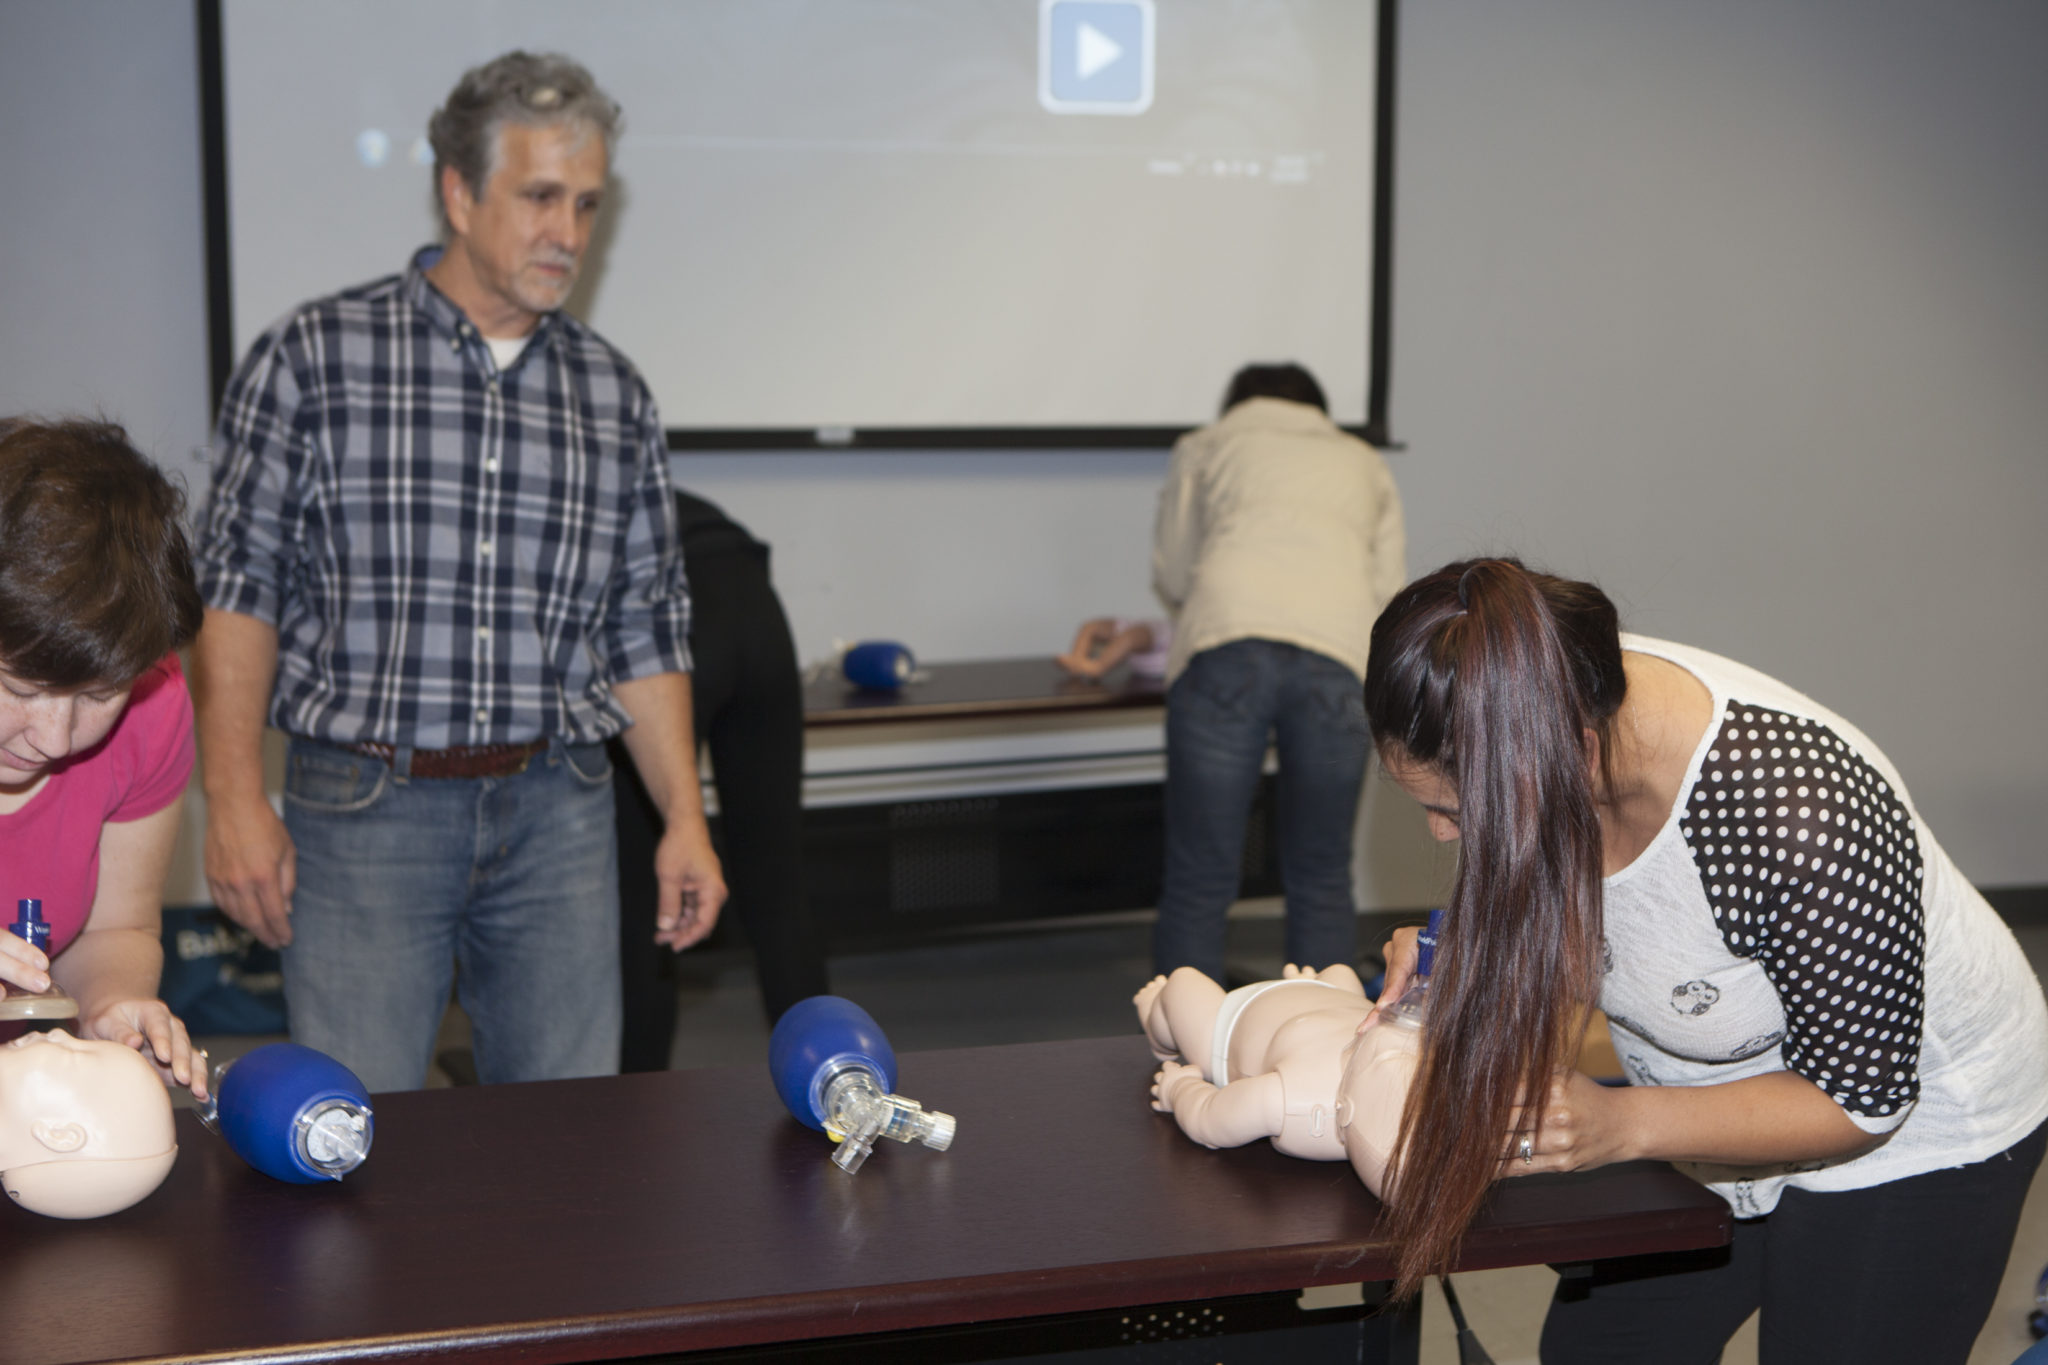 Pulse fitness and cpr pulse cpr and first aid school pulse fitness 4015 washington rd suite h martinez ga 30907 john rogers bls instructor pulsecpr967gmail xflitez Image collections